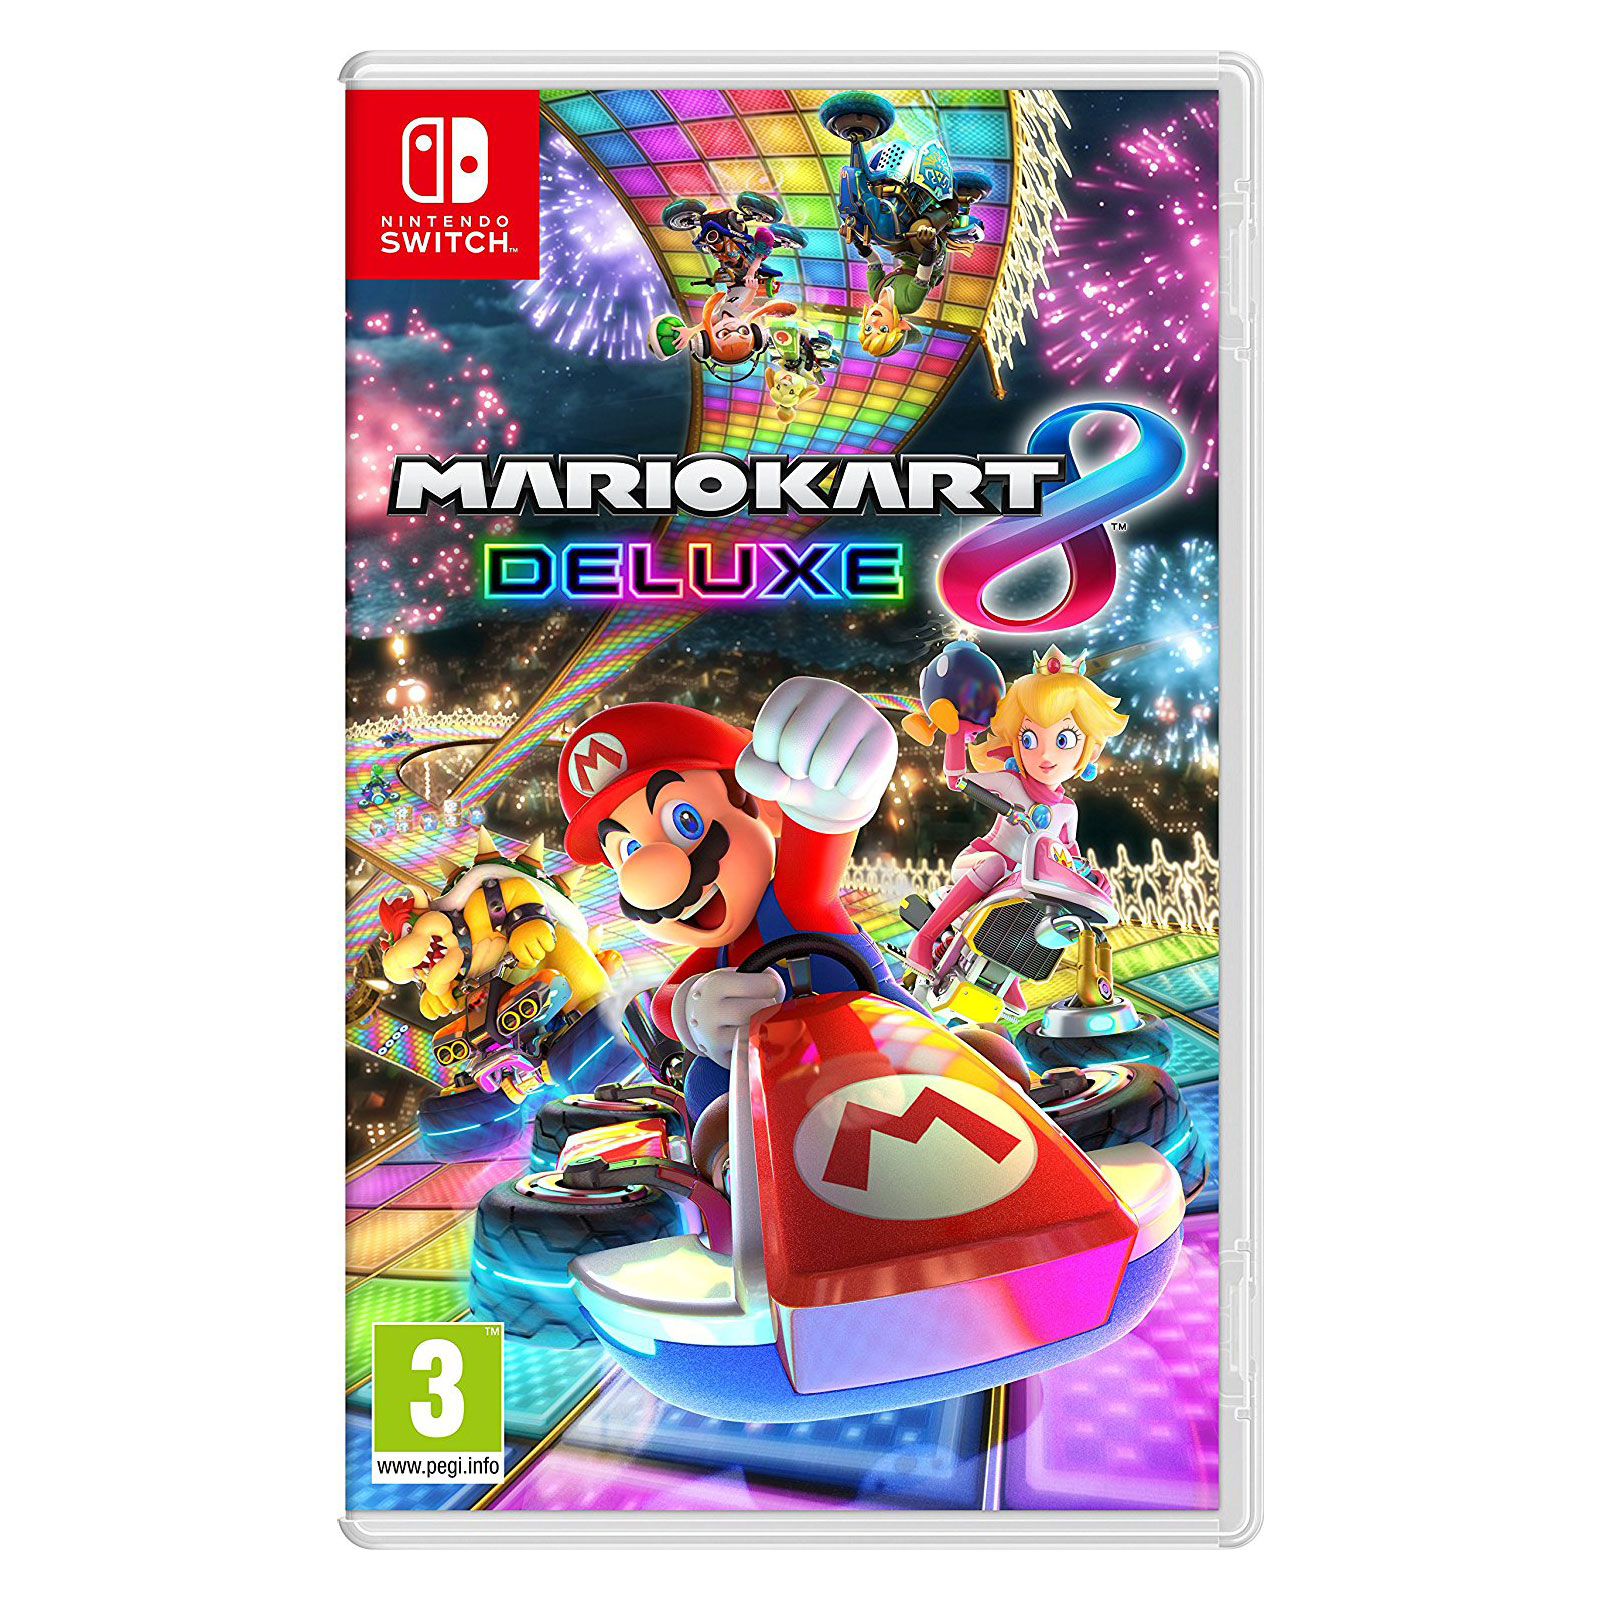 Jeux Nintendo Switch Mario Kart 8 Deluxe (Switch) Mario Kart 8 Deluxe (Switch)